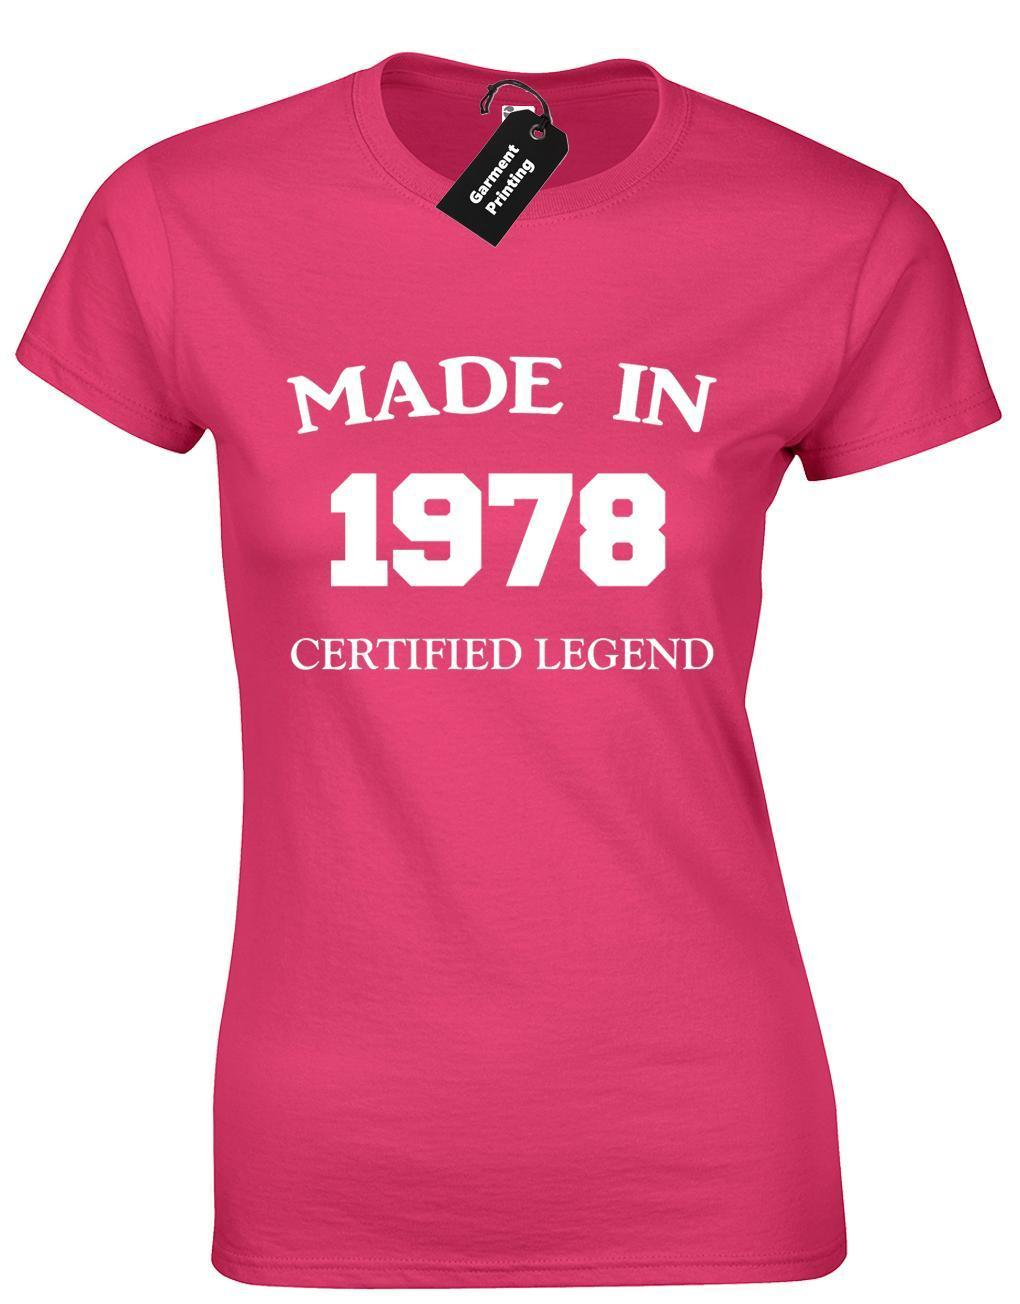 MADE IN 1978 LADIES T SHIRT FUNNY 40TH BIRTHDAY GIFT PRESENT IDEA MUM DAD DESIGN Best Deal On Shirts That Shirt From Yuxin05 138